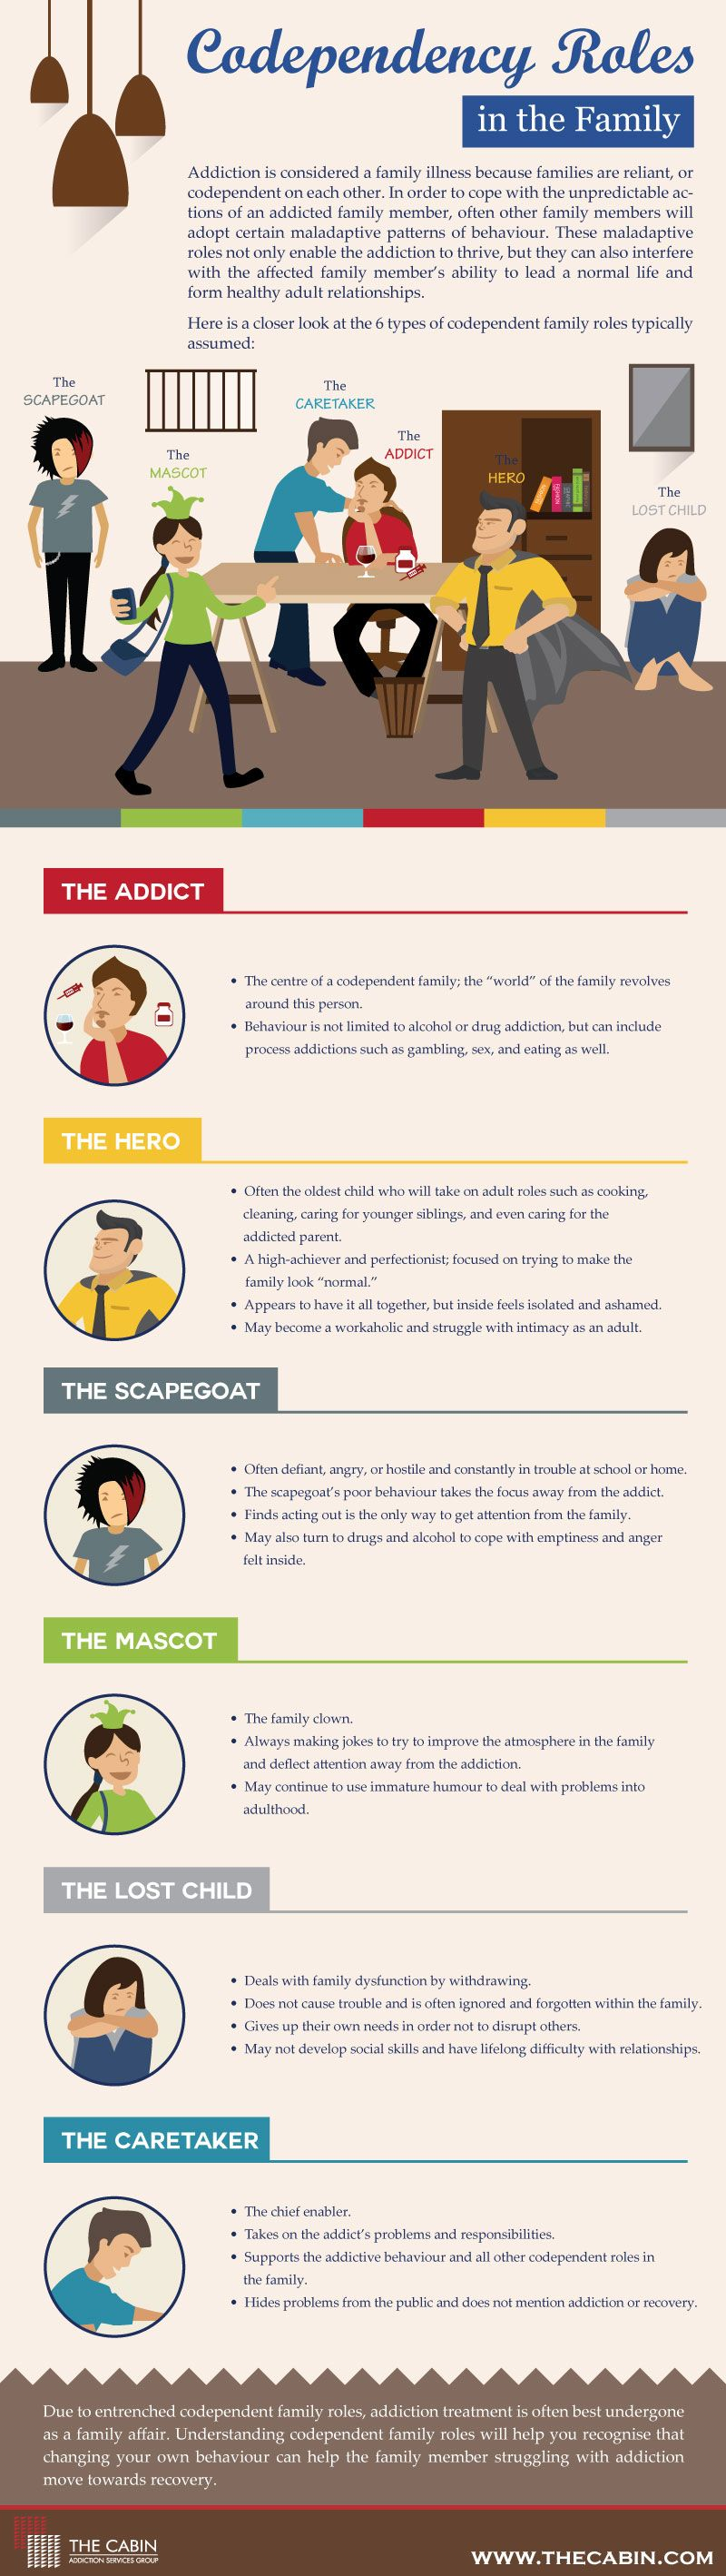 Codependent Roles in the Family [Infographic]